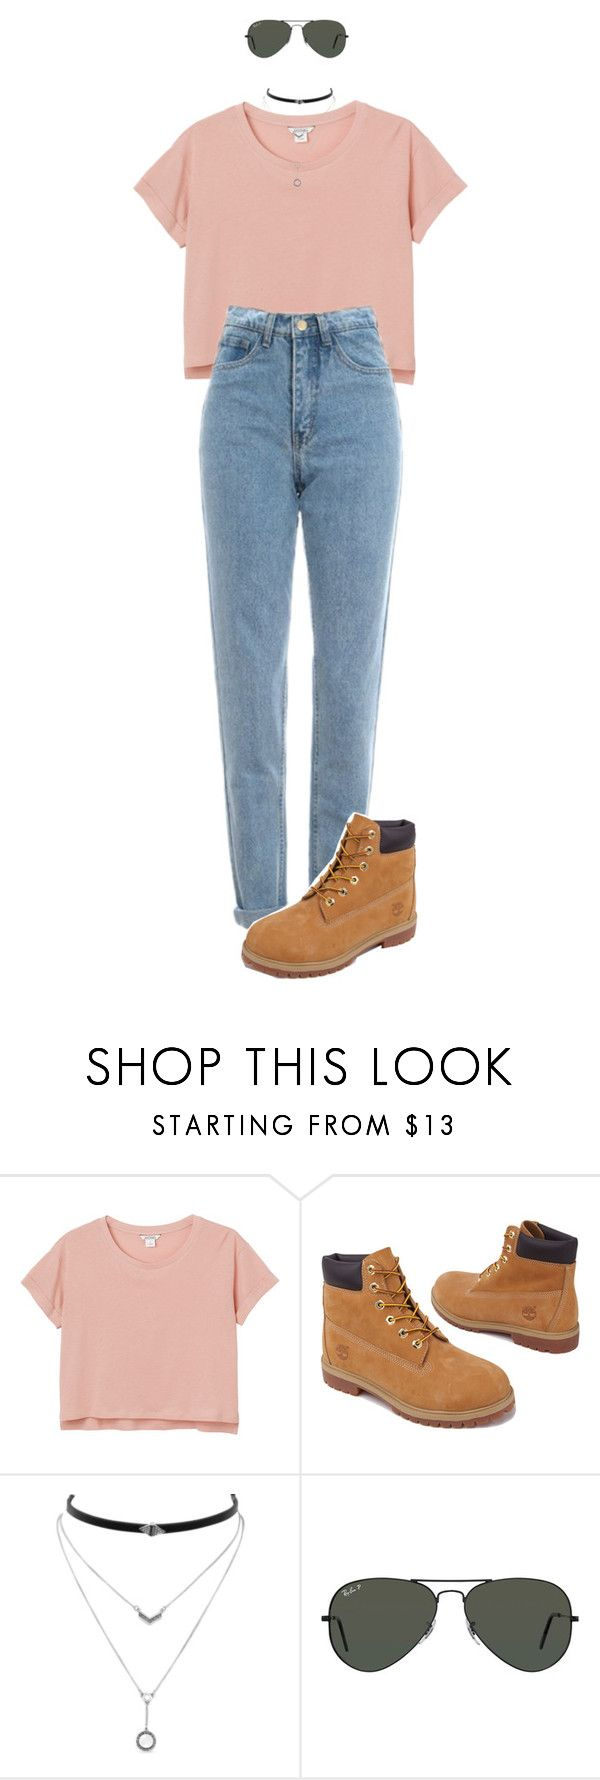 """""""Partners in crime will leave their mark"""" by pageslearntothink on Polyvore featuring Monki, WALL, Timberland, Jessica Simpson and Ray-Ban"""